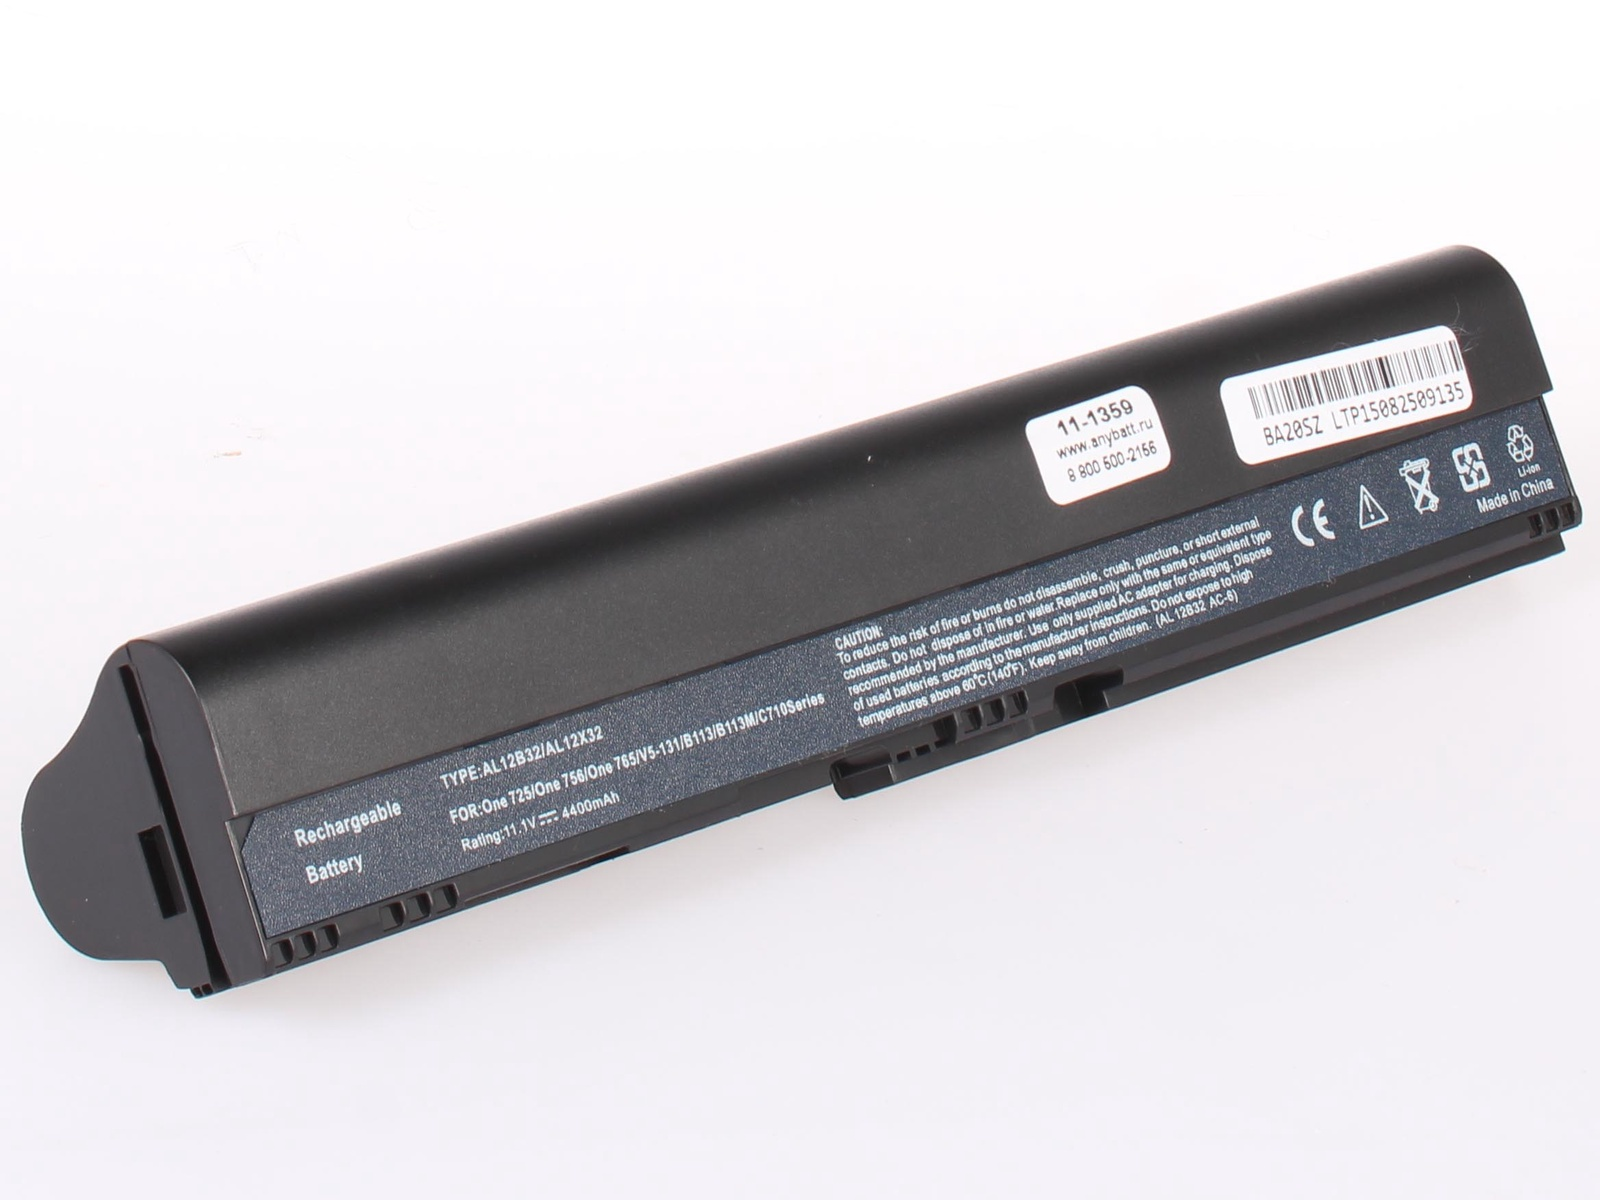 Аккумулятор для ноутбука AnyBatt для Acer Aspire One 725-C61BB, Aspire V5-121-C72G32nbb, Aspire V5-131-842G32nkk, Aspire V5-571P, Aspire V5-431P-987B4G50mass, Travelmate B113-E-10172G32akk, Aspire One AO725-C61KK free shipping for acer aspire v5 571 v5 571p v5 571pgb v5 531pg ms2361 assembly touch screen and display not with frame